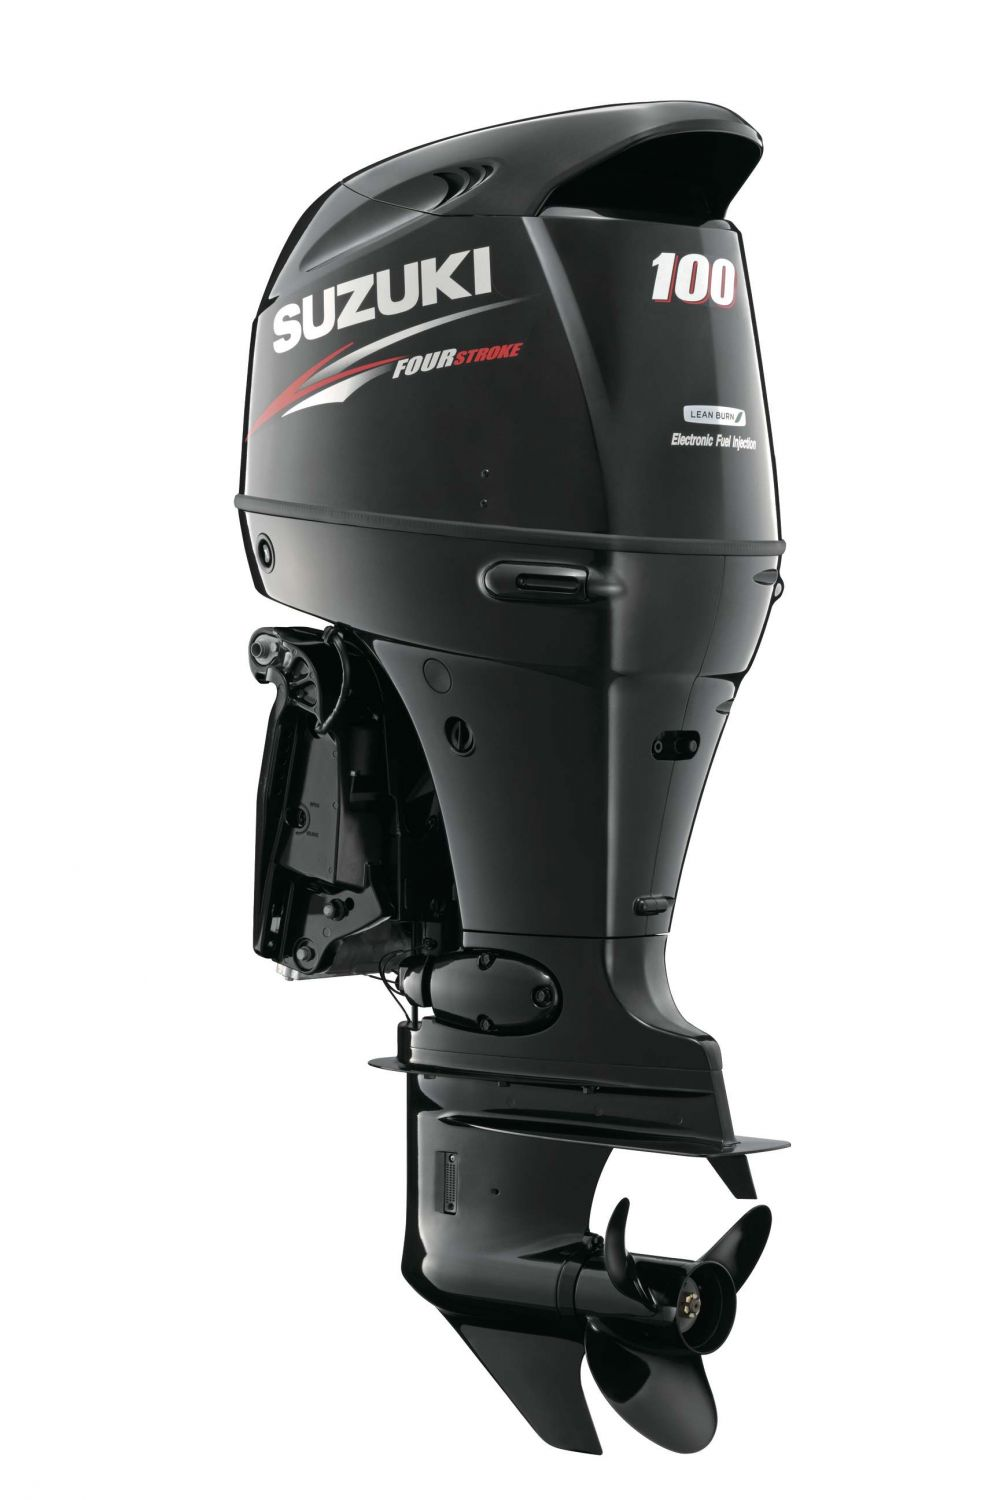 Suzuki DF100A four stroke marine outboard engine